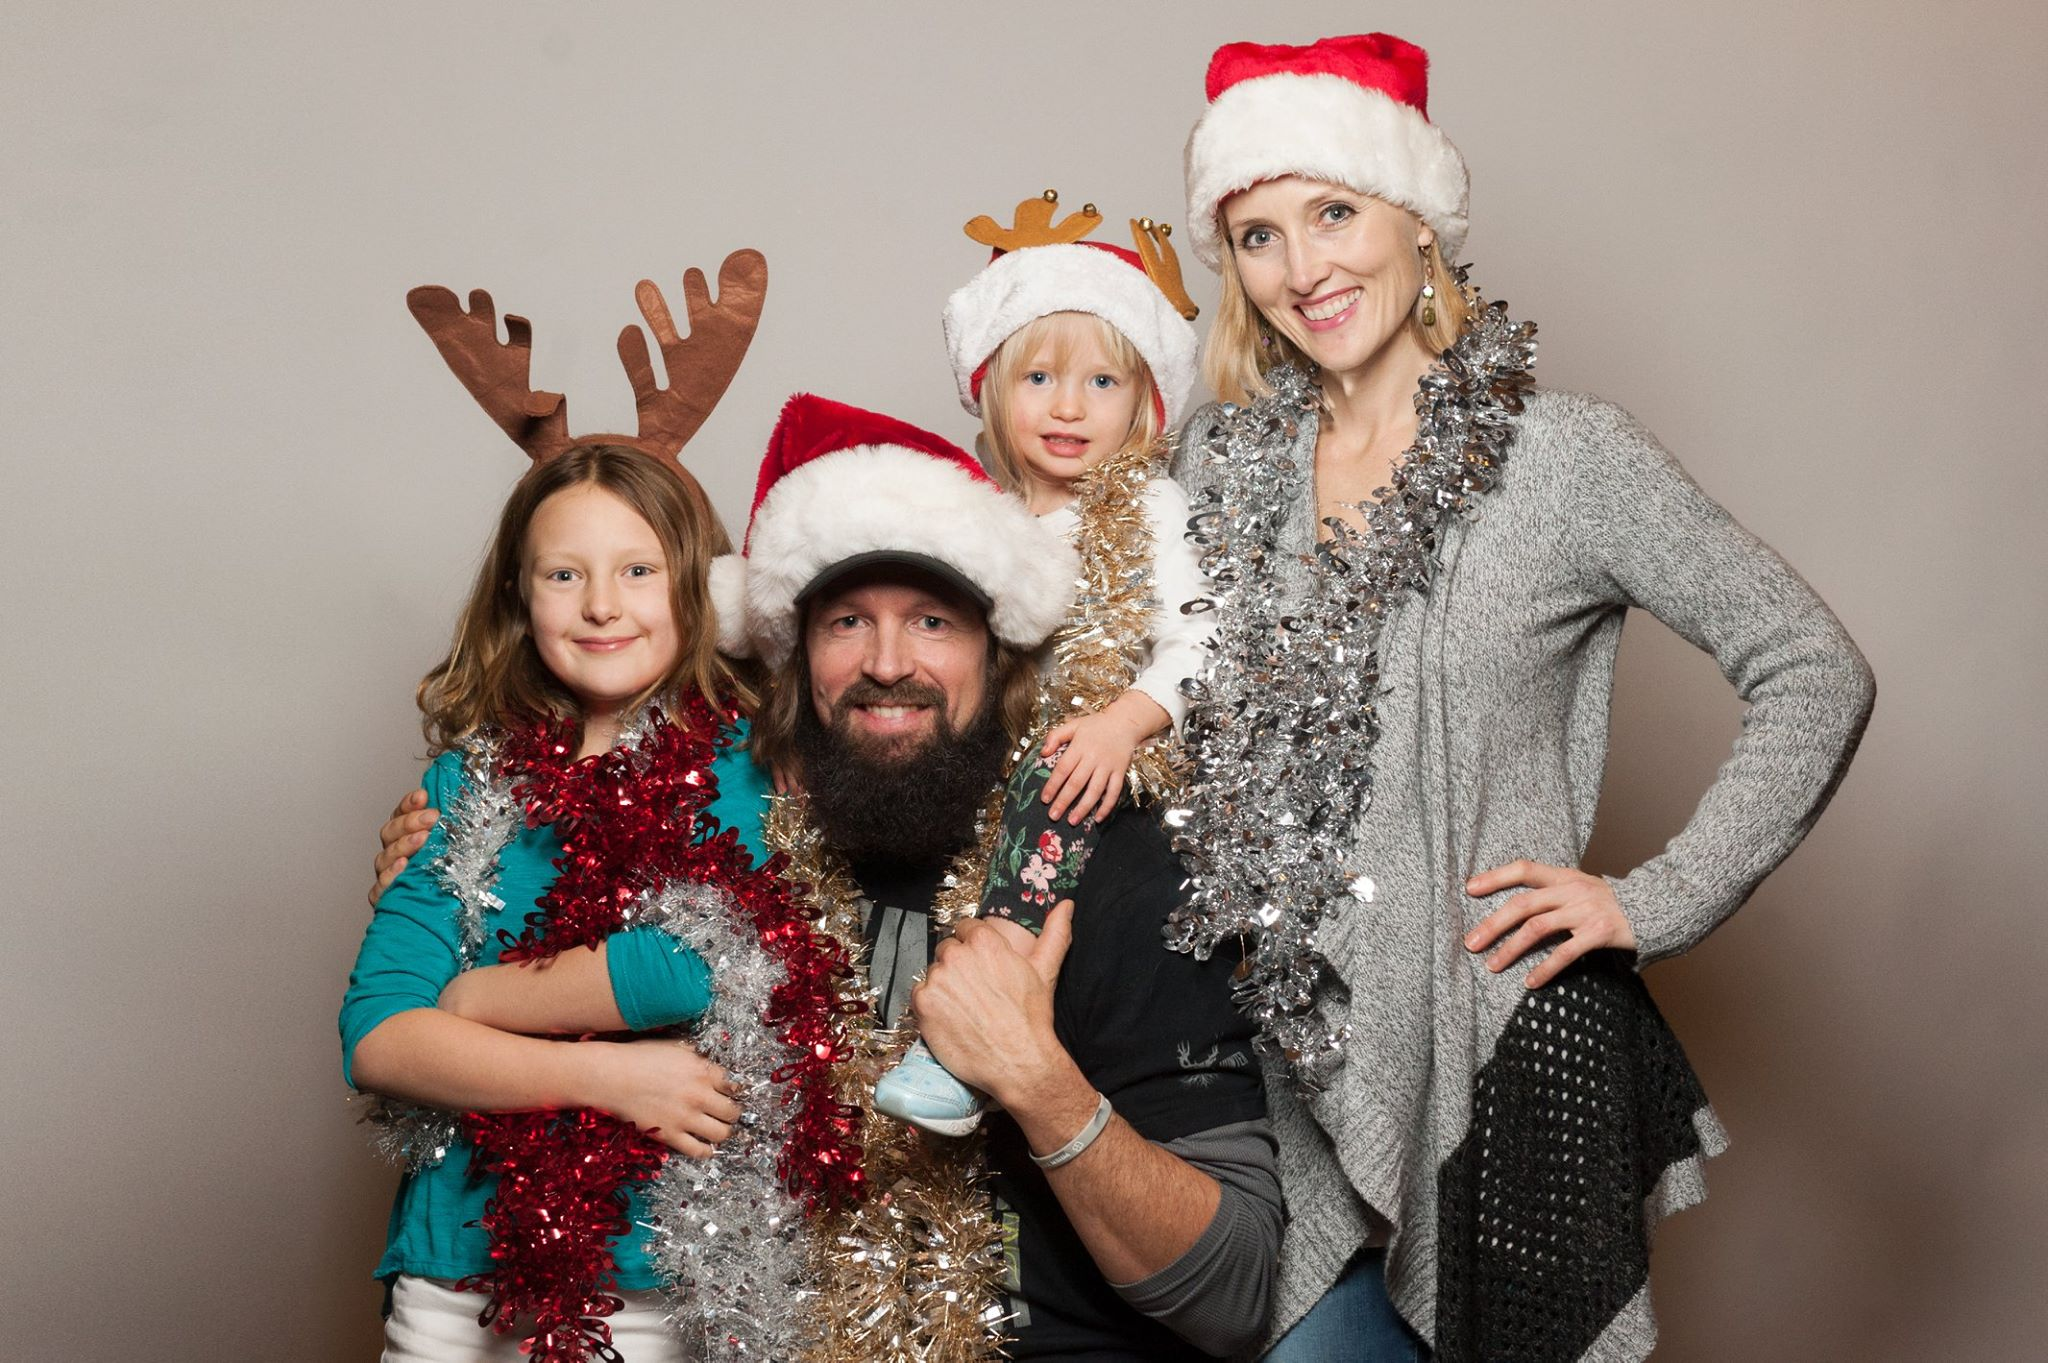 Merry Christmas and Happy New Year from our StHealthy Family- Ryan, Hilary, Pailey Belle, and Tanna.